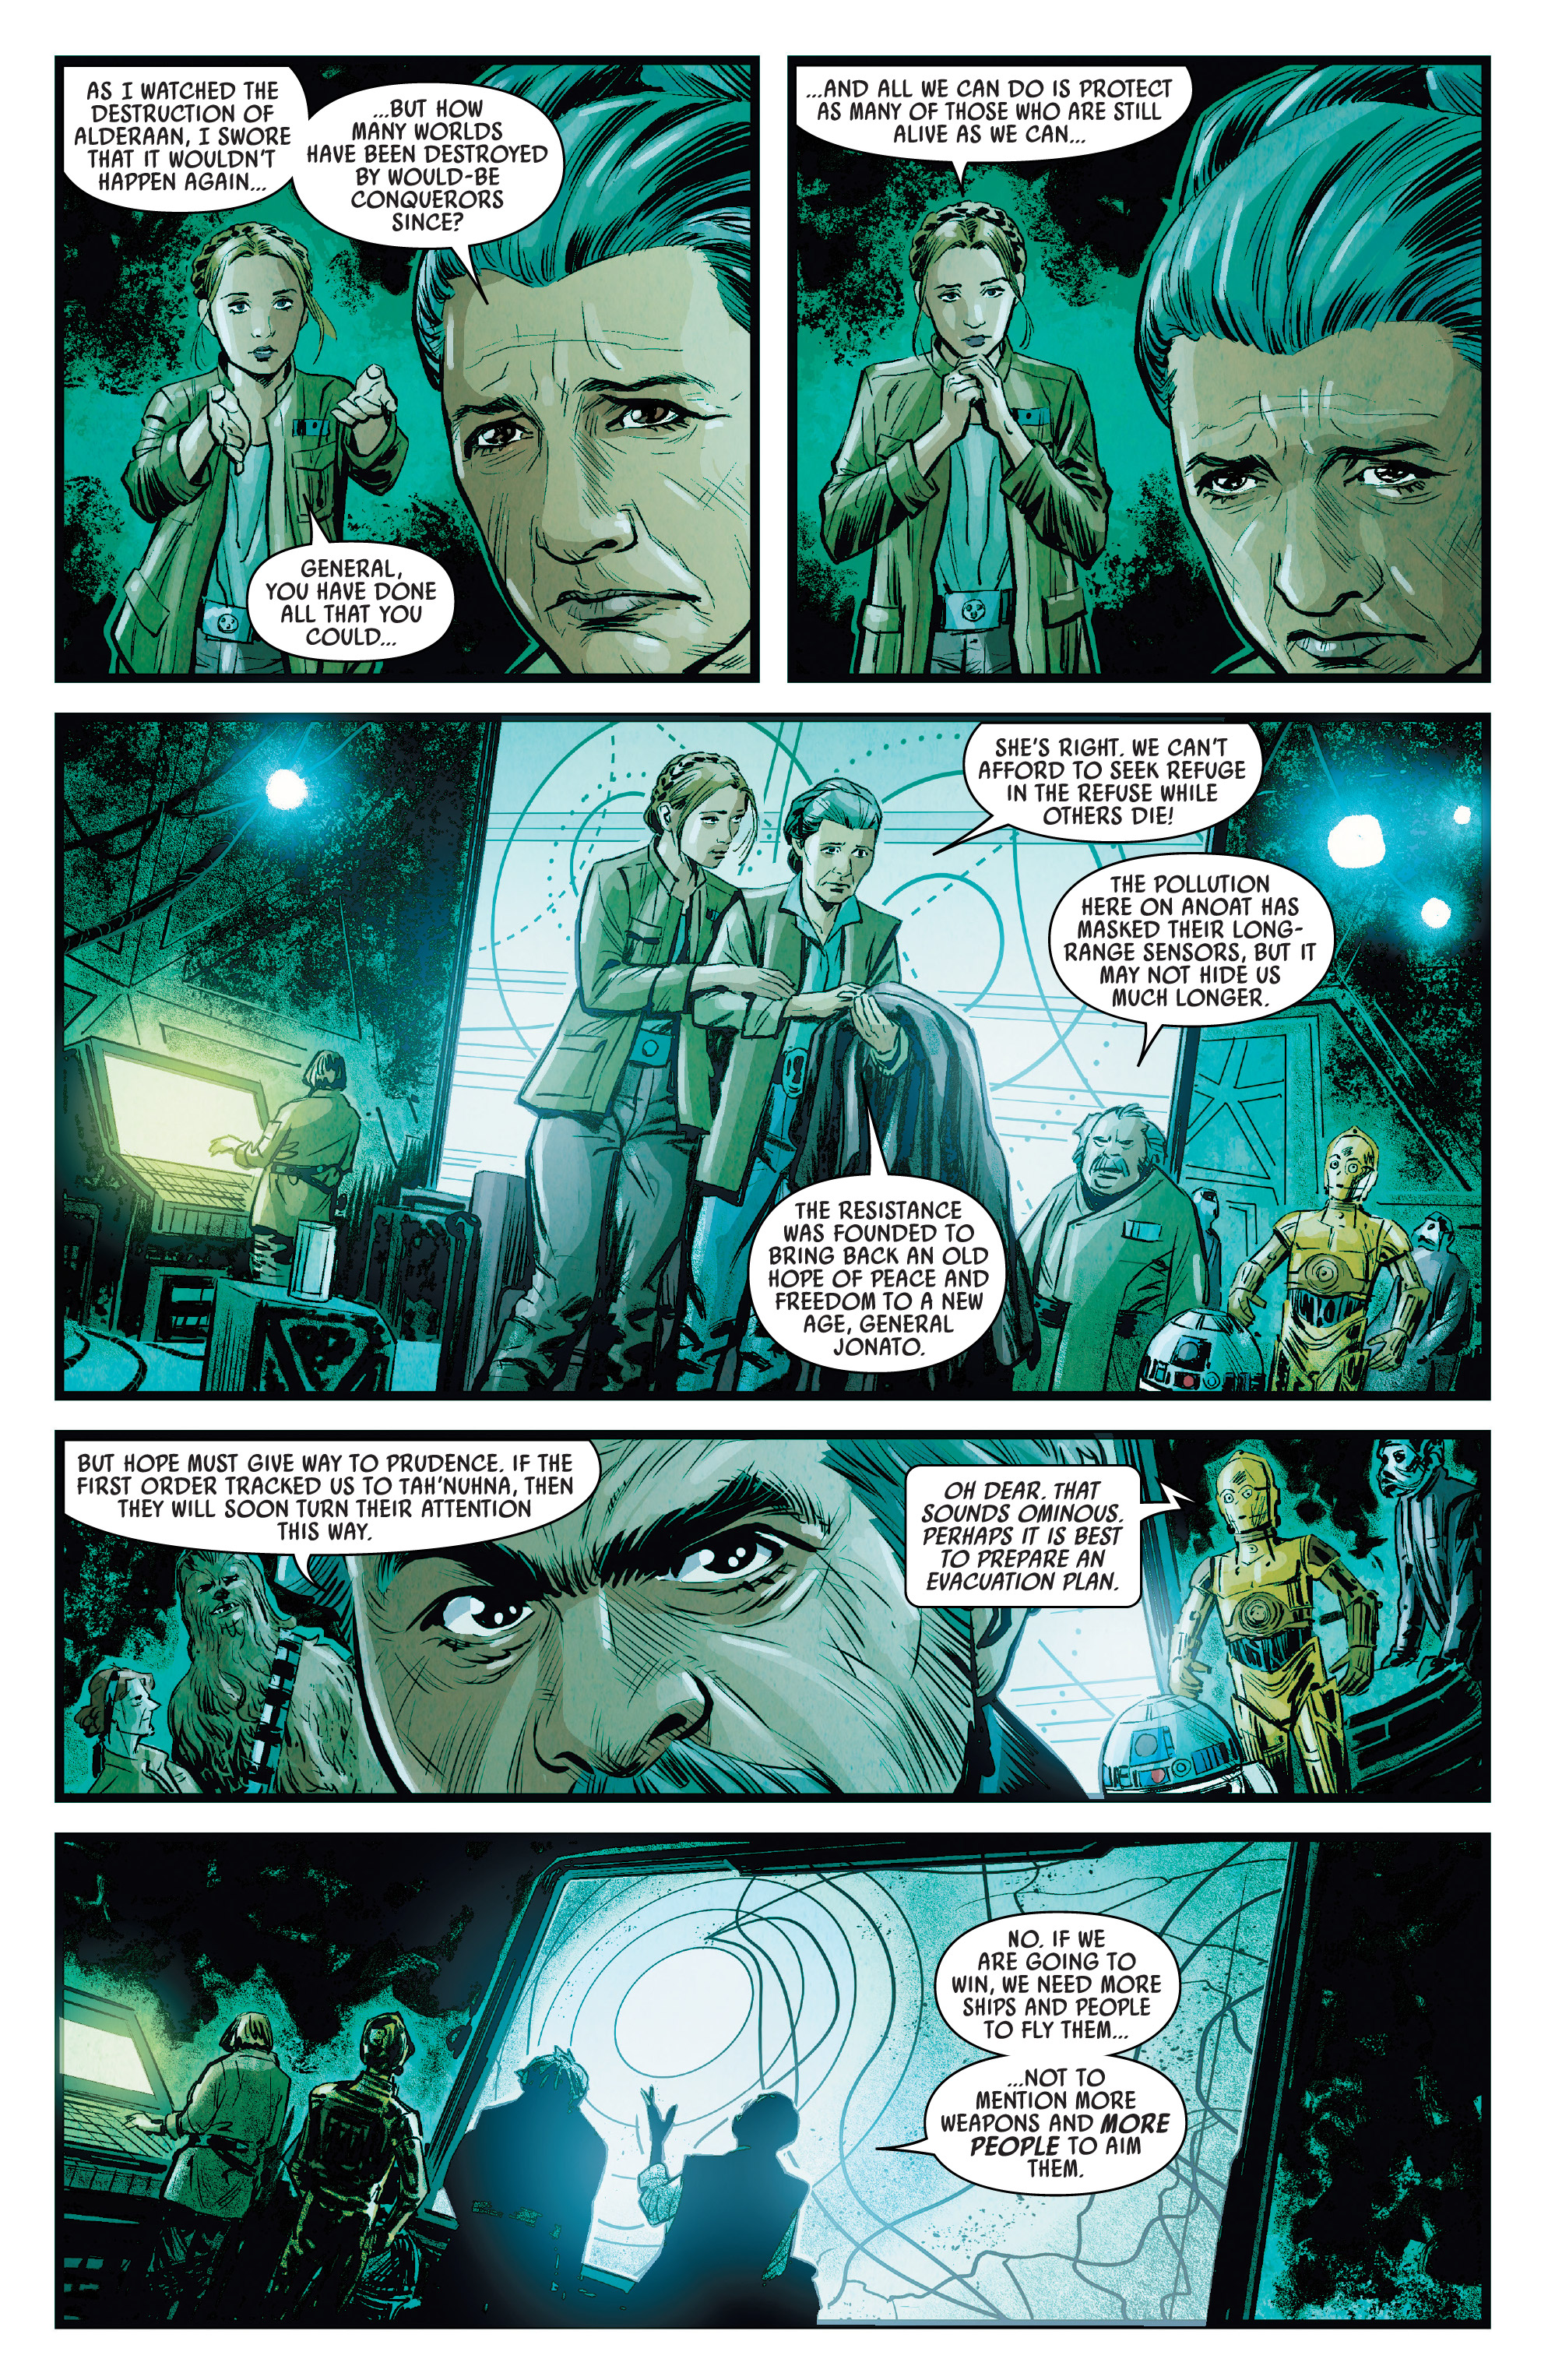 Journey To Star Wars The Rise Of Skywalker Allegiance 2019 Chapter 1 Page 10